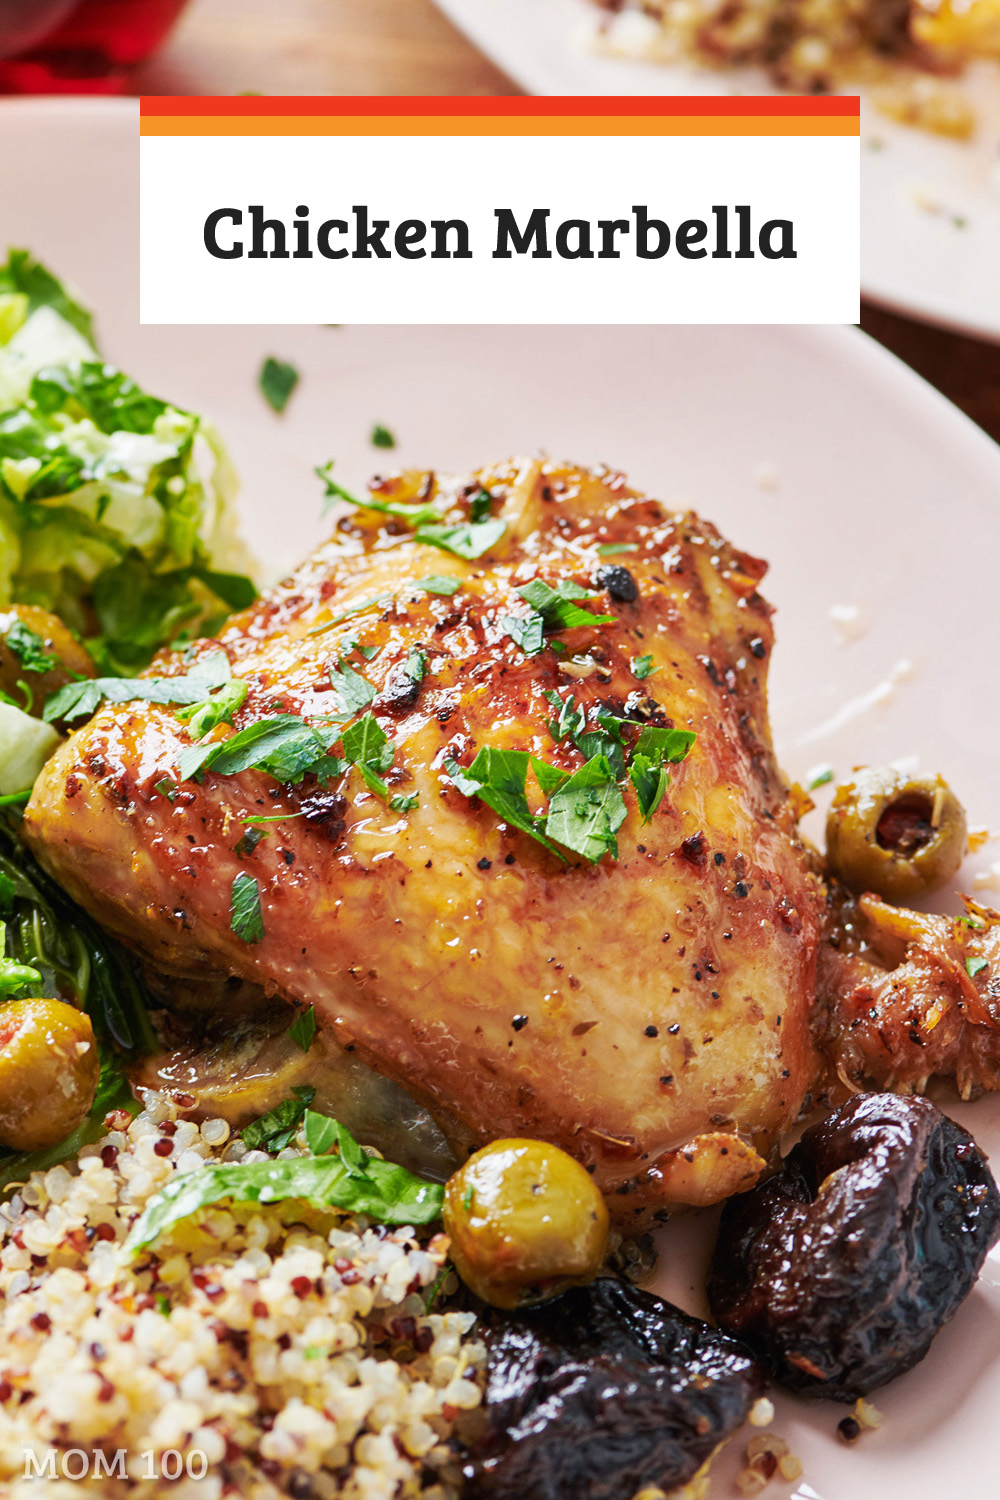 The timeless recipe for one of the best chicken dishes on earth: Chicken Marbella from The Silver Palate Cookbook.